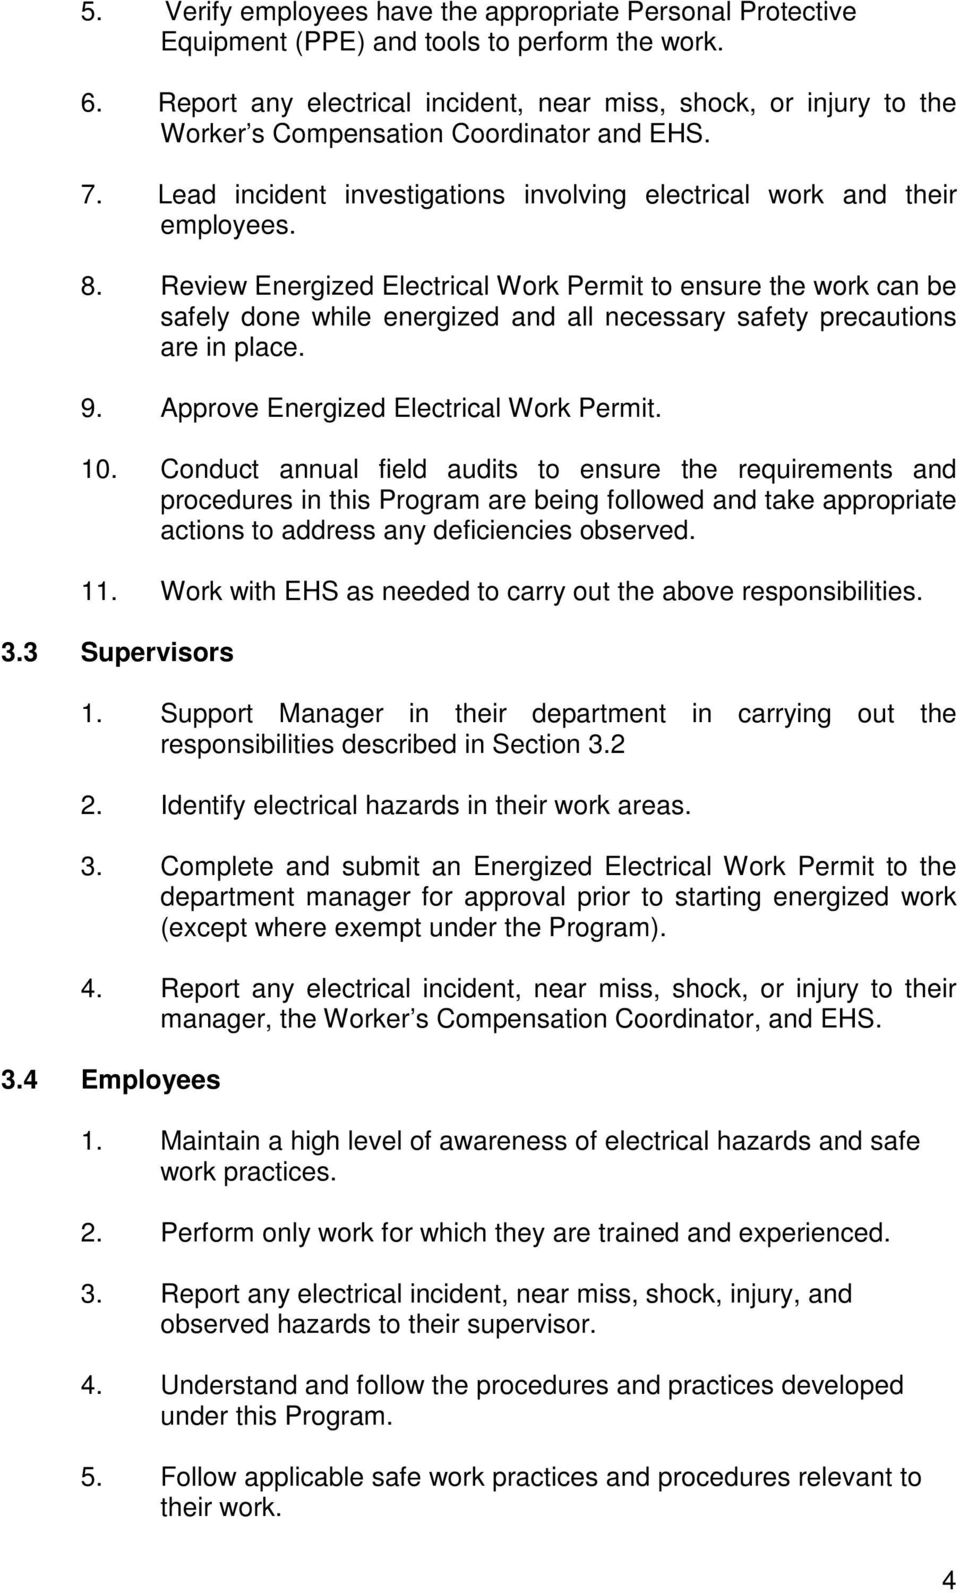 Review Energized Electrical Work Permit to ensure the work can be safely done while energized and all necessary safety precautions are in place. 9. Approve Energized Electrical Work Permit. 10.